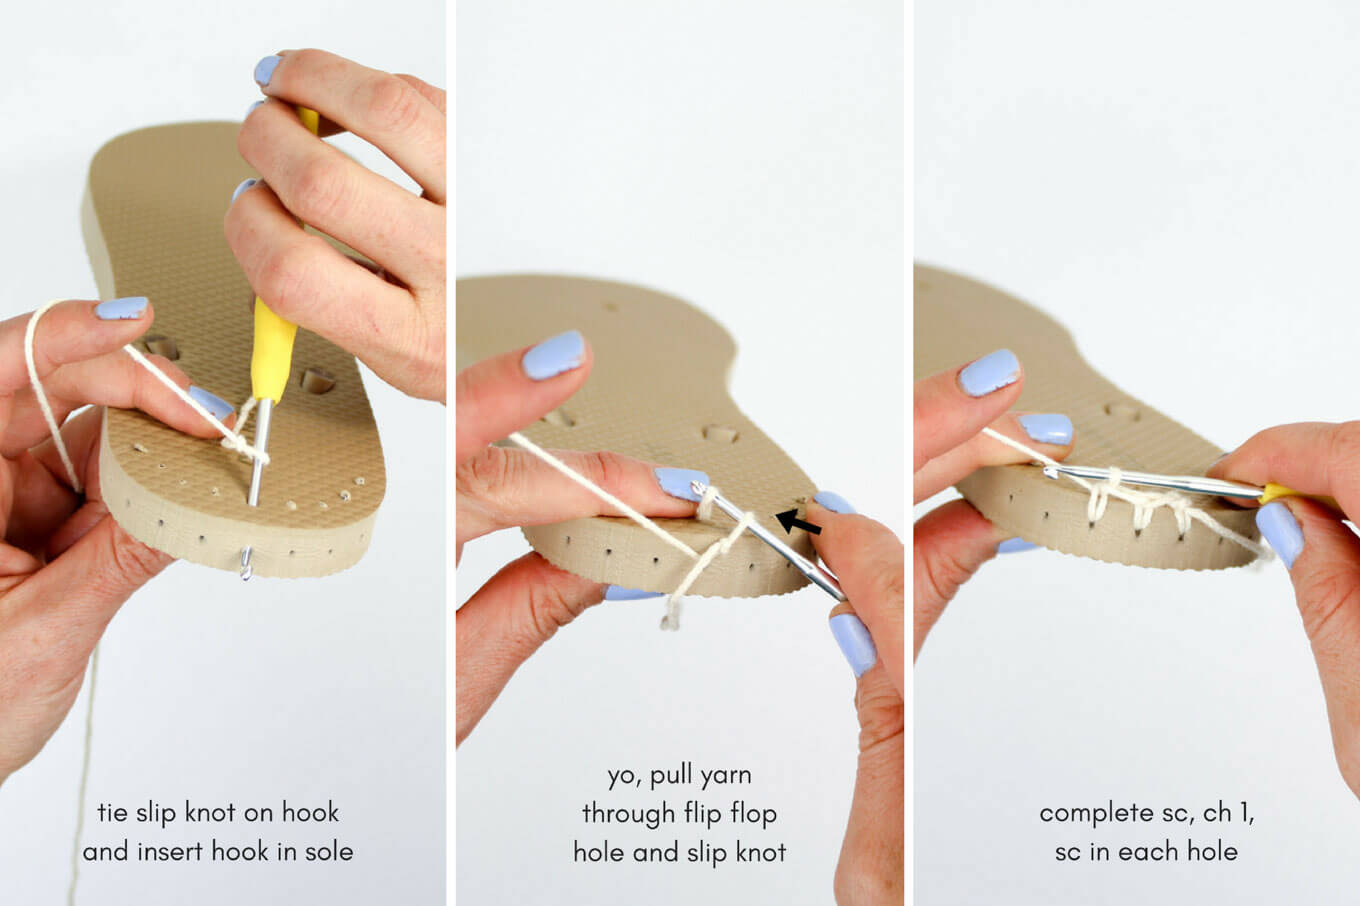 How to attach yarn to a flip flop sole for crochet boots, shoes or sandals.